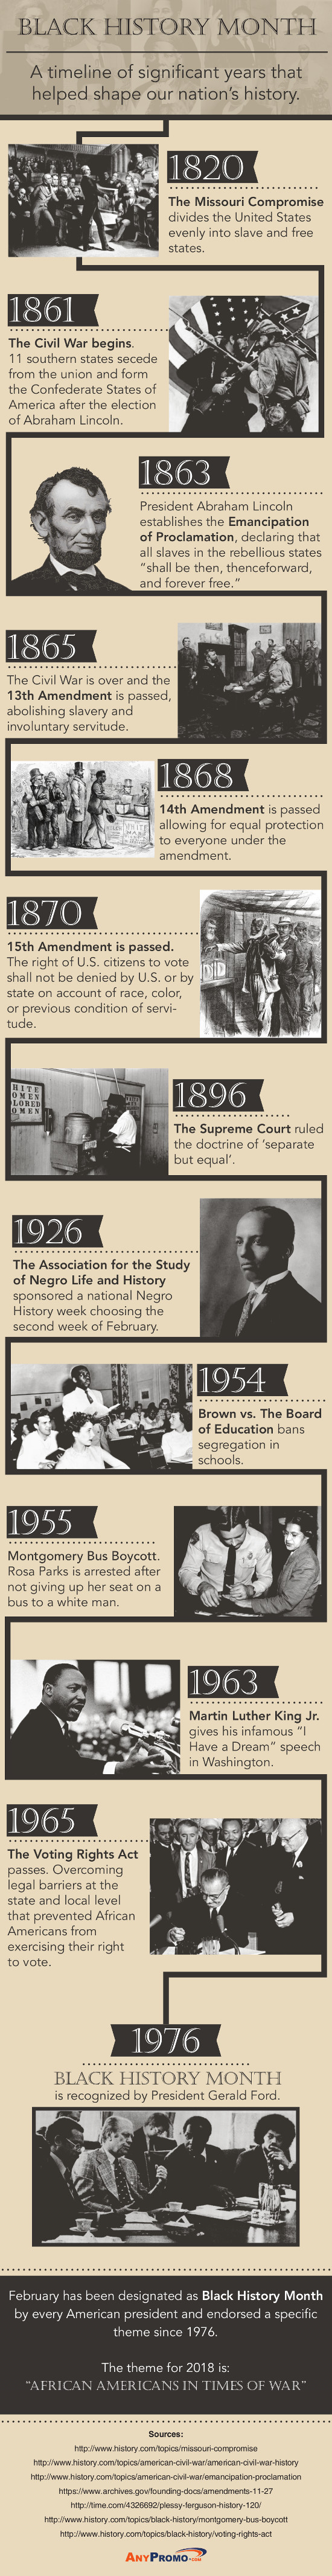 Black History - A Timeline of Significant Years that Helped Shape our Nation's History